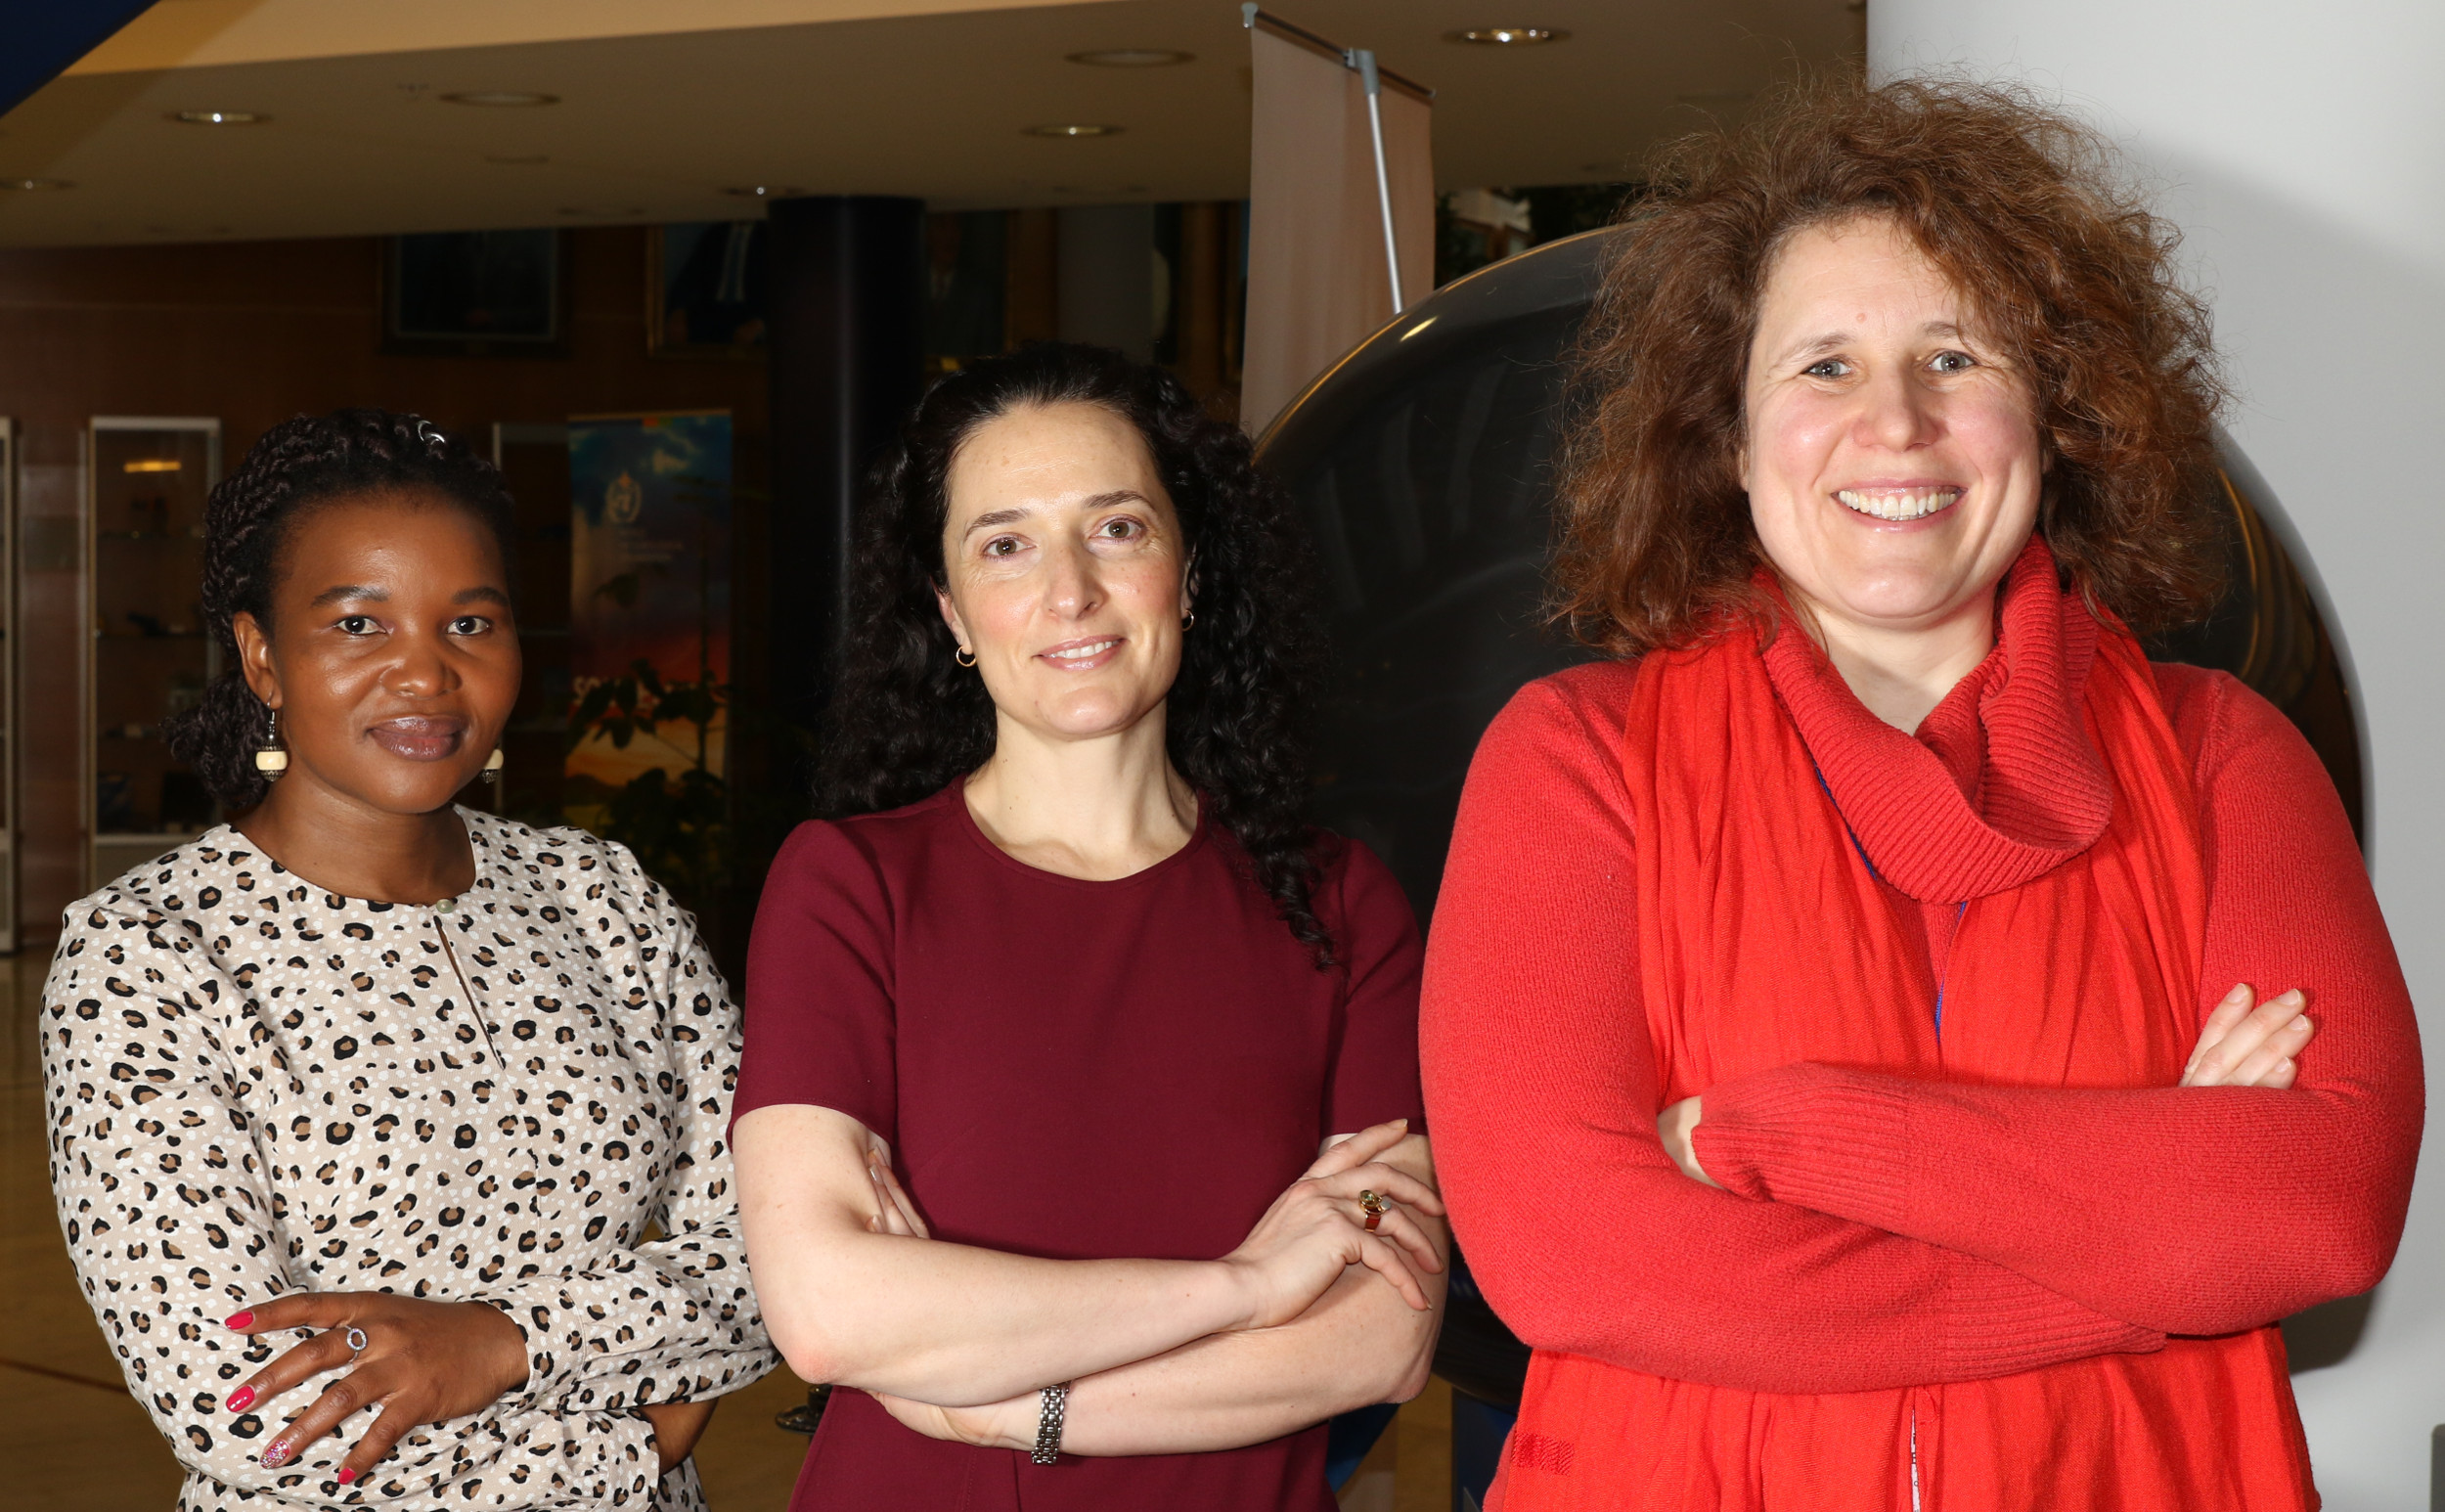 Meet three women leading the vision and strategy of the GEO Programme Board. (From left) Andiswa Mlisa, Yana Gevorgyan, Nathalie Pettorelli discuss their passion for Earth observations.